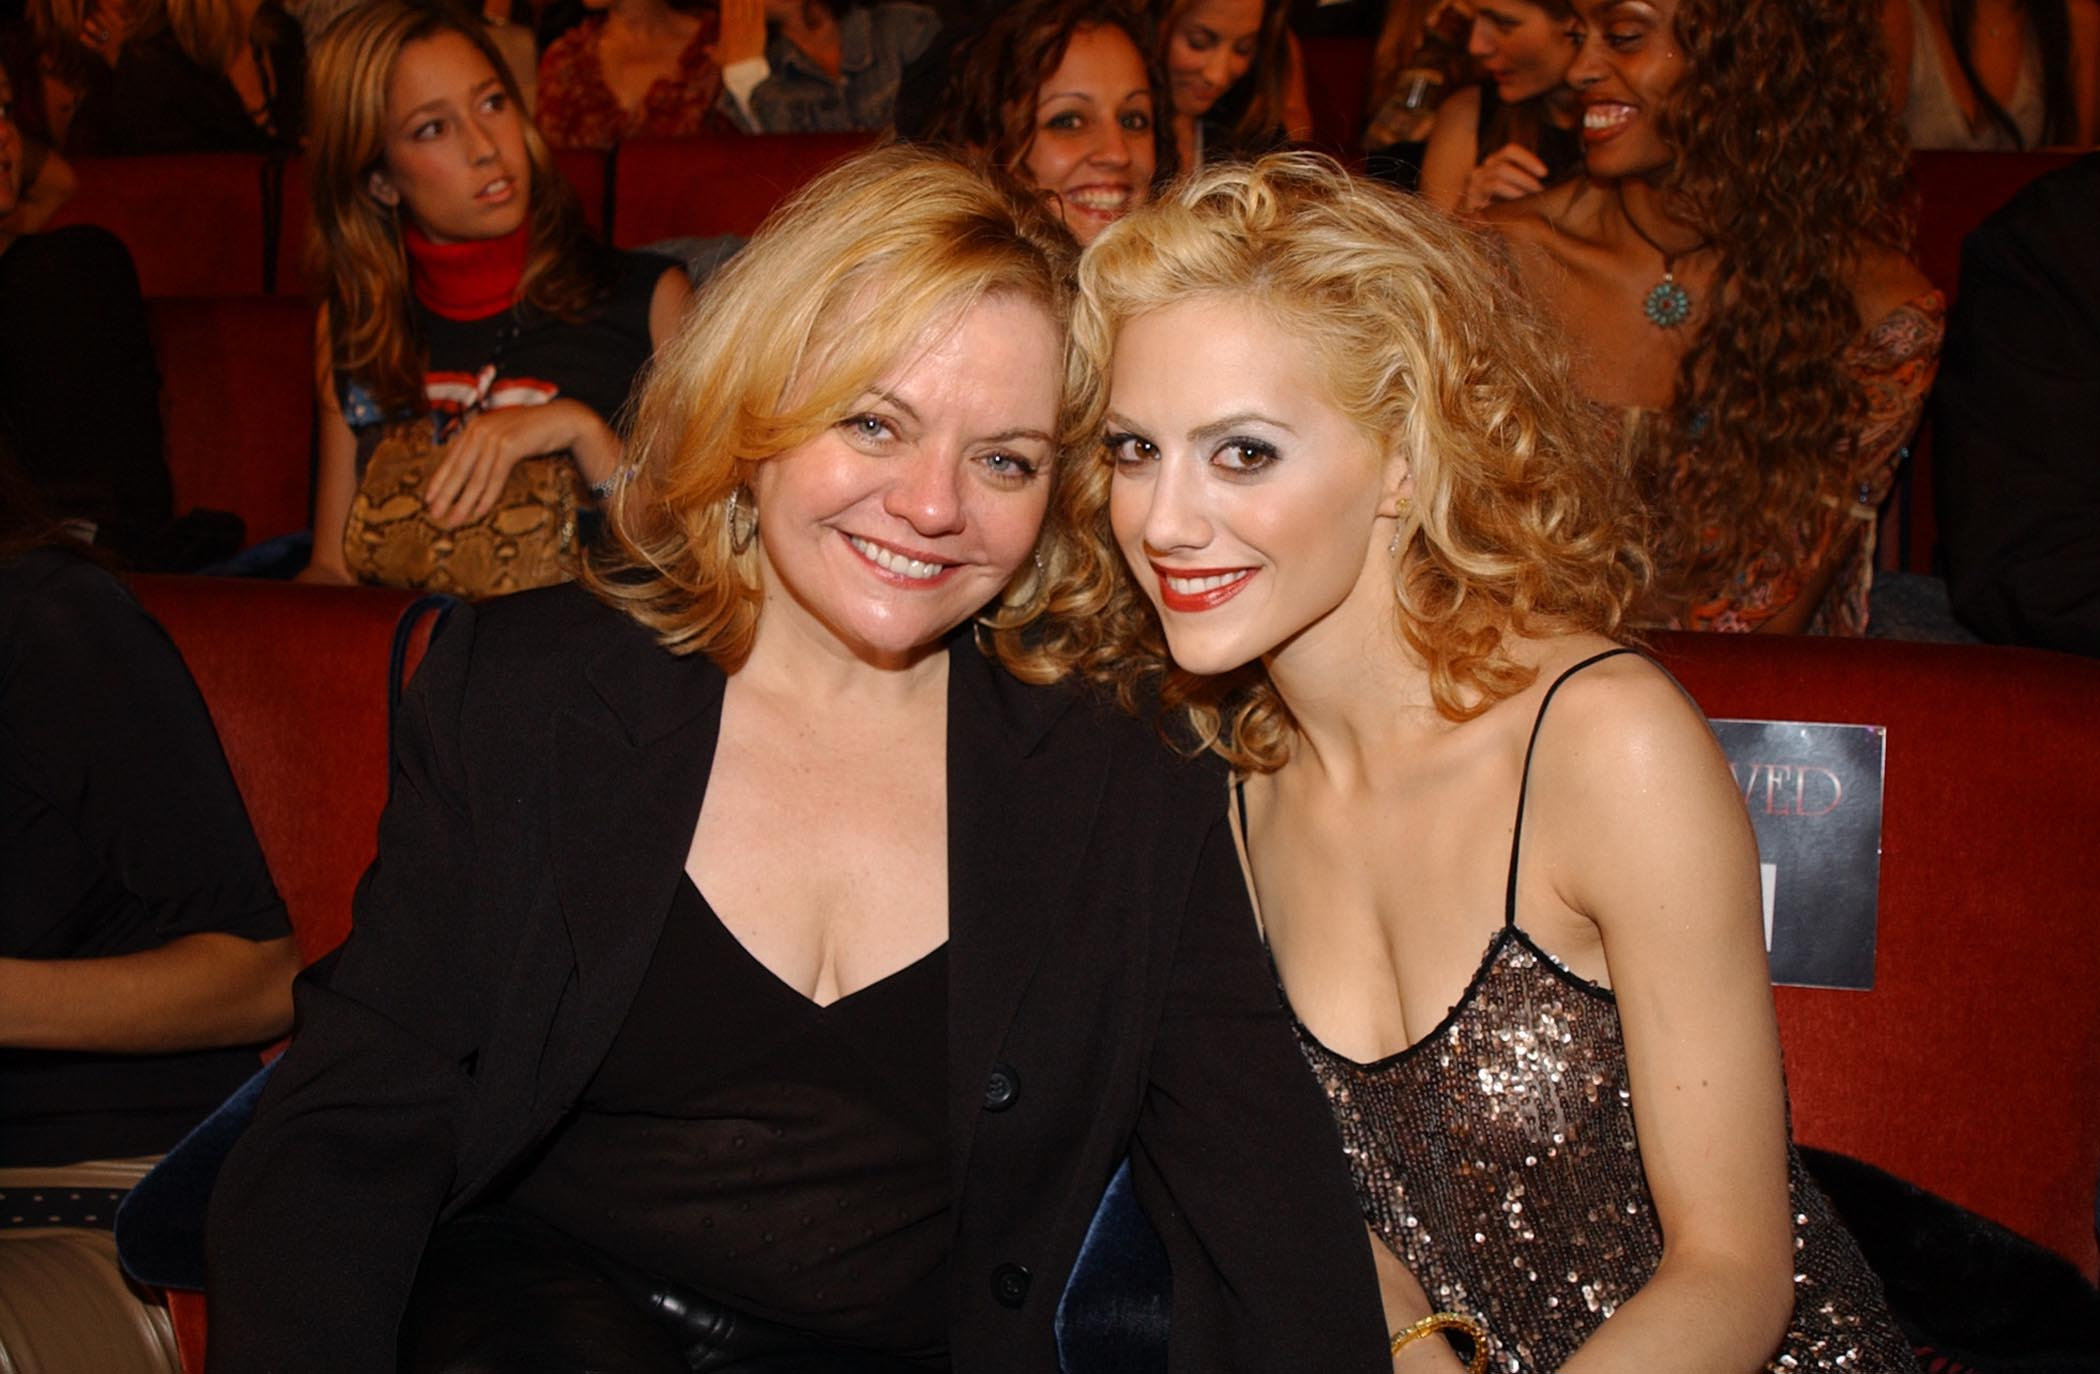 Sharon Murphy and Brittany Murphy during 2002 VH1 Vogue Fashion Awards in New York   Photo: Getty Images